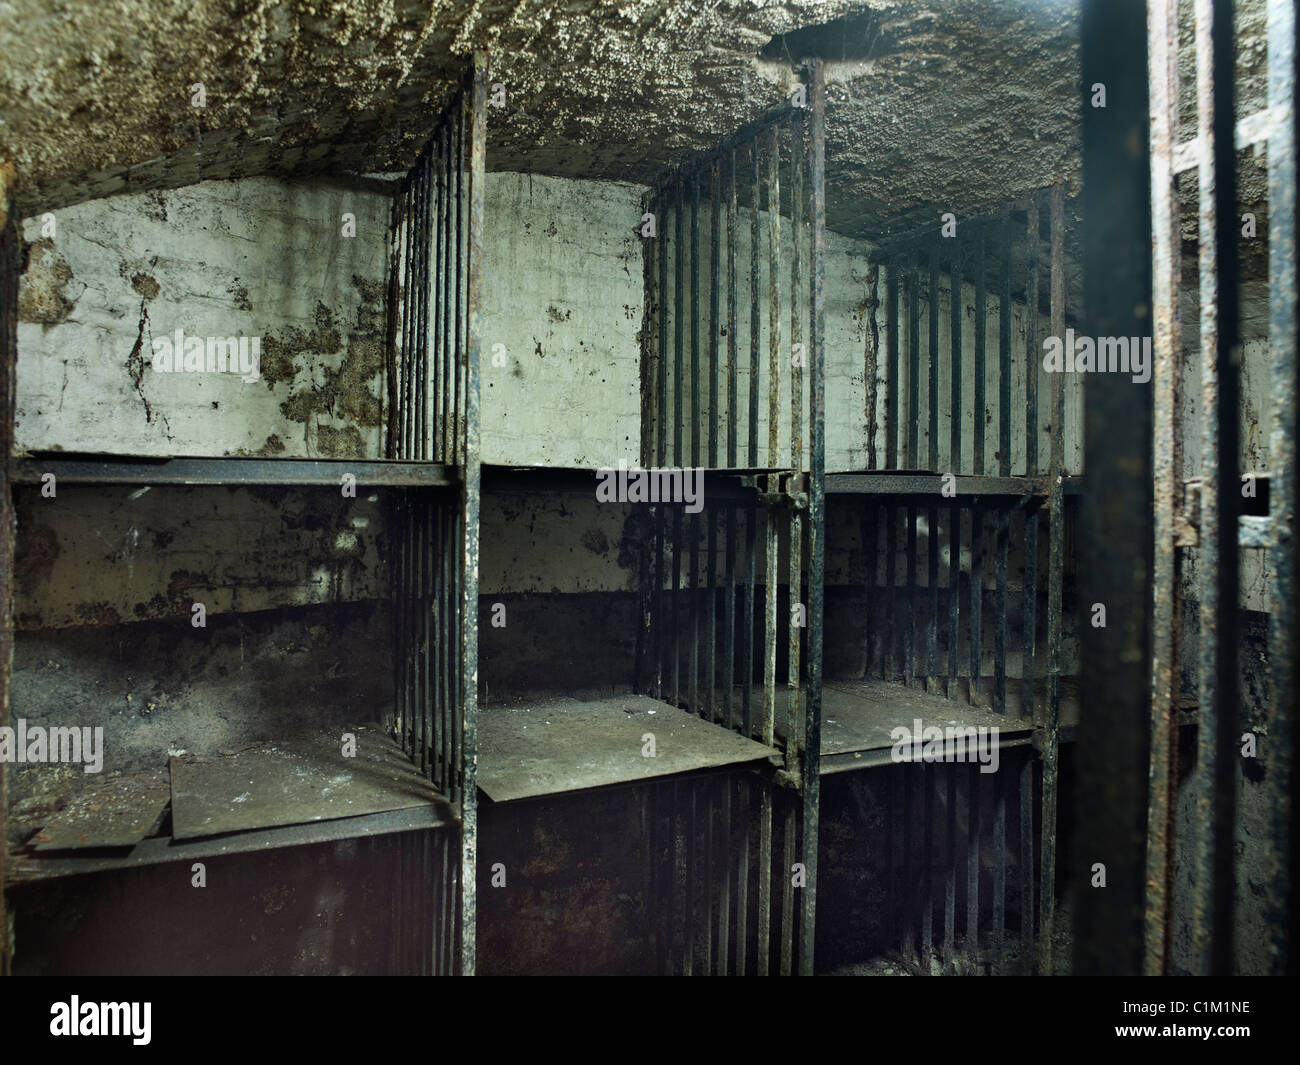 Newgate cells in Viaduct Tavern, City of London. cells were once part of Giltspur Comptor, with metal cages - Stock Image